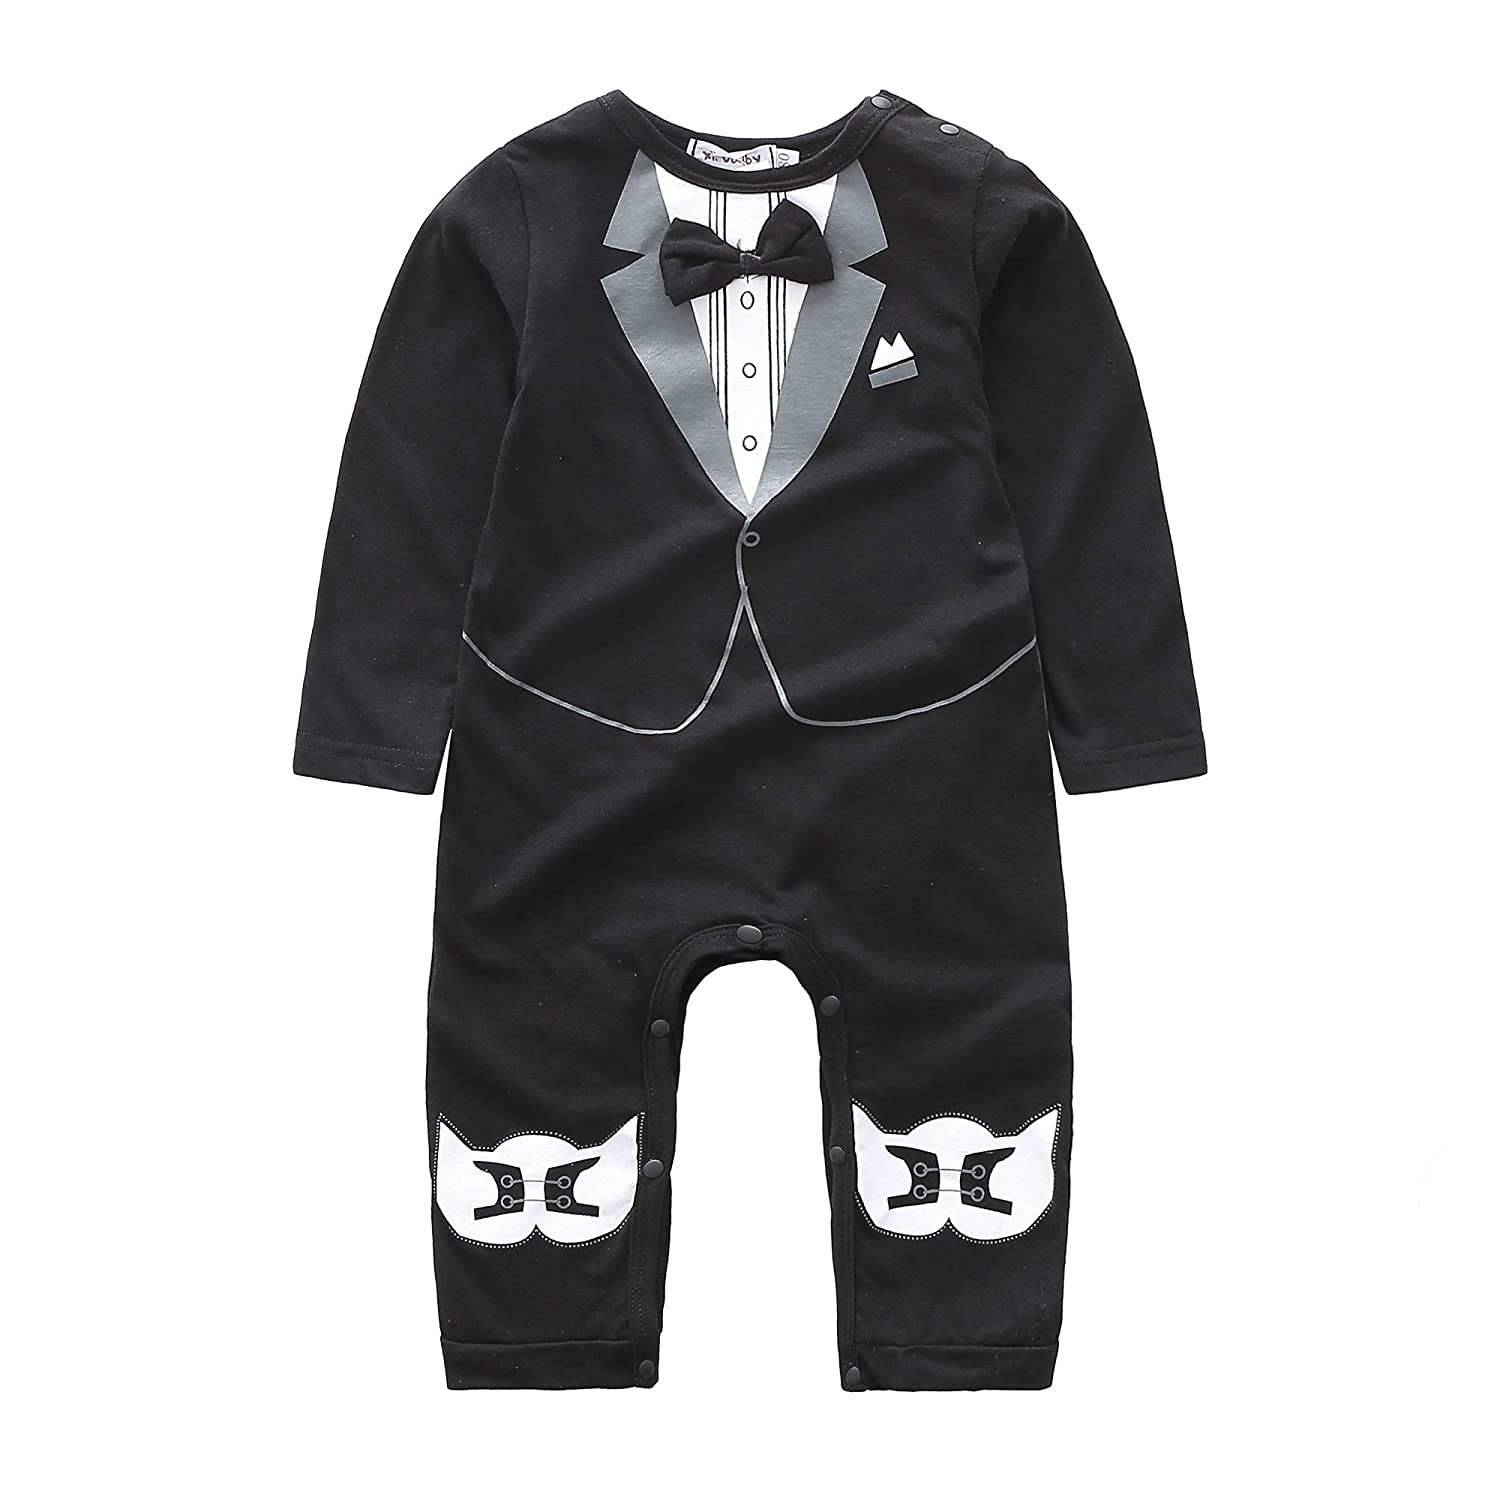 Infant Gentleman Panda Print Bowtie Onesie Romper with Footed Outfit Suit